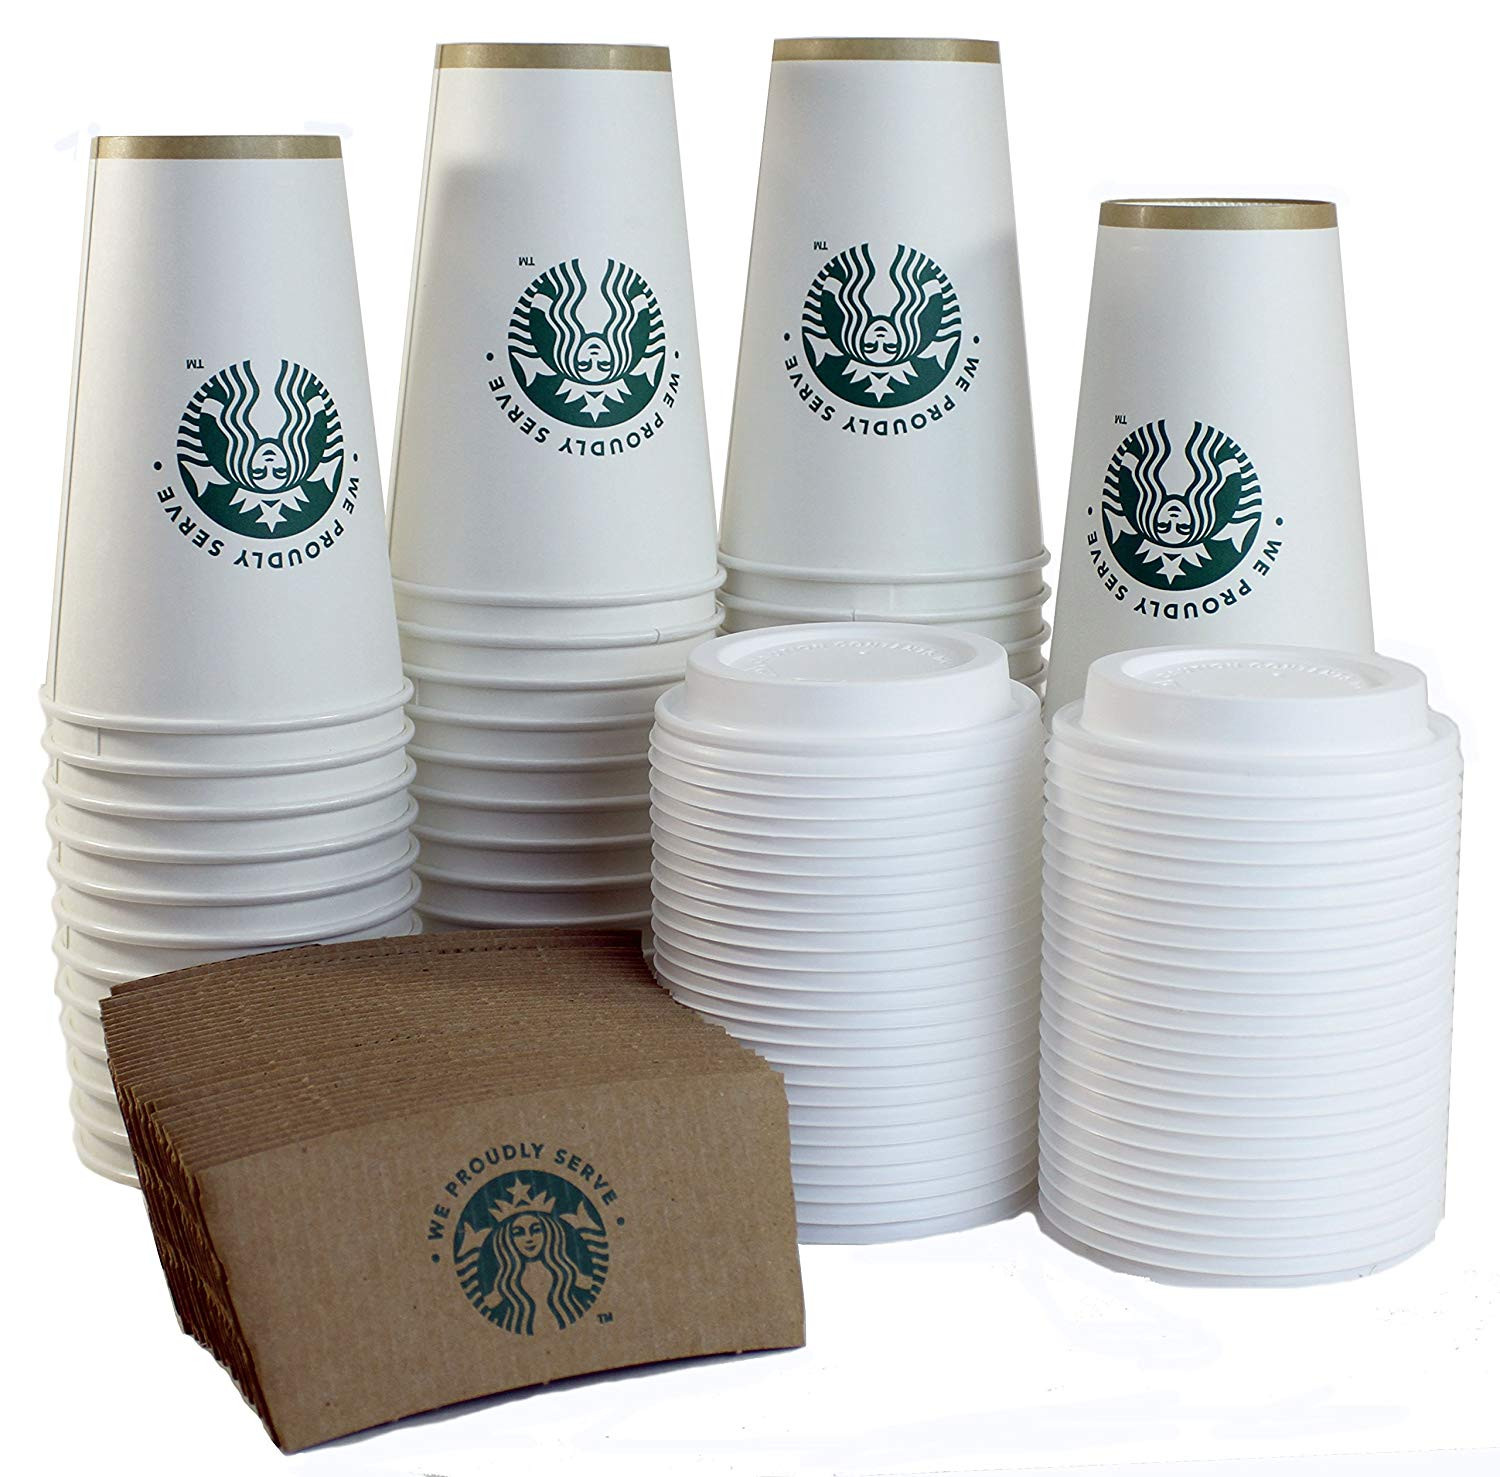 global views ovoid vase of amazon com starbucks clear disposable cold beverage cup 16 ounce inside amazon com starbucks clear disposable cold beverage cup 16 ounce and lids pack of 50 each kitchen dining